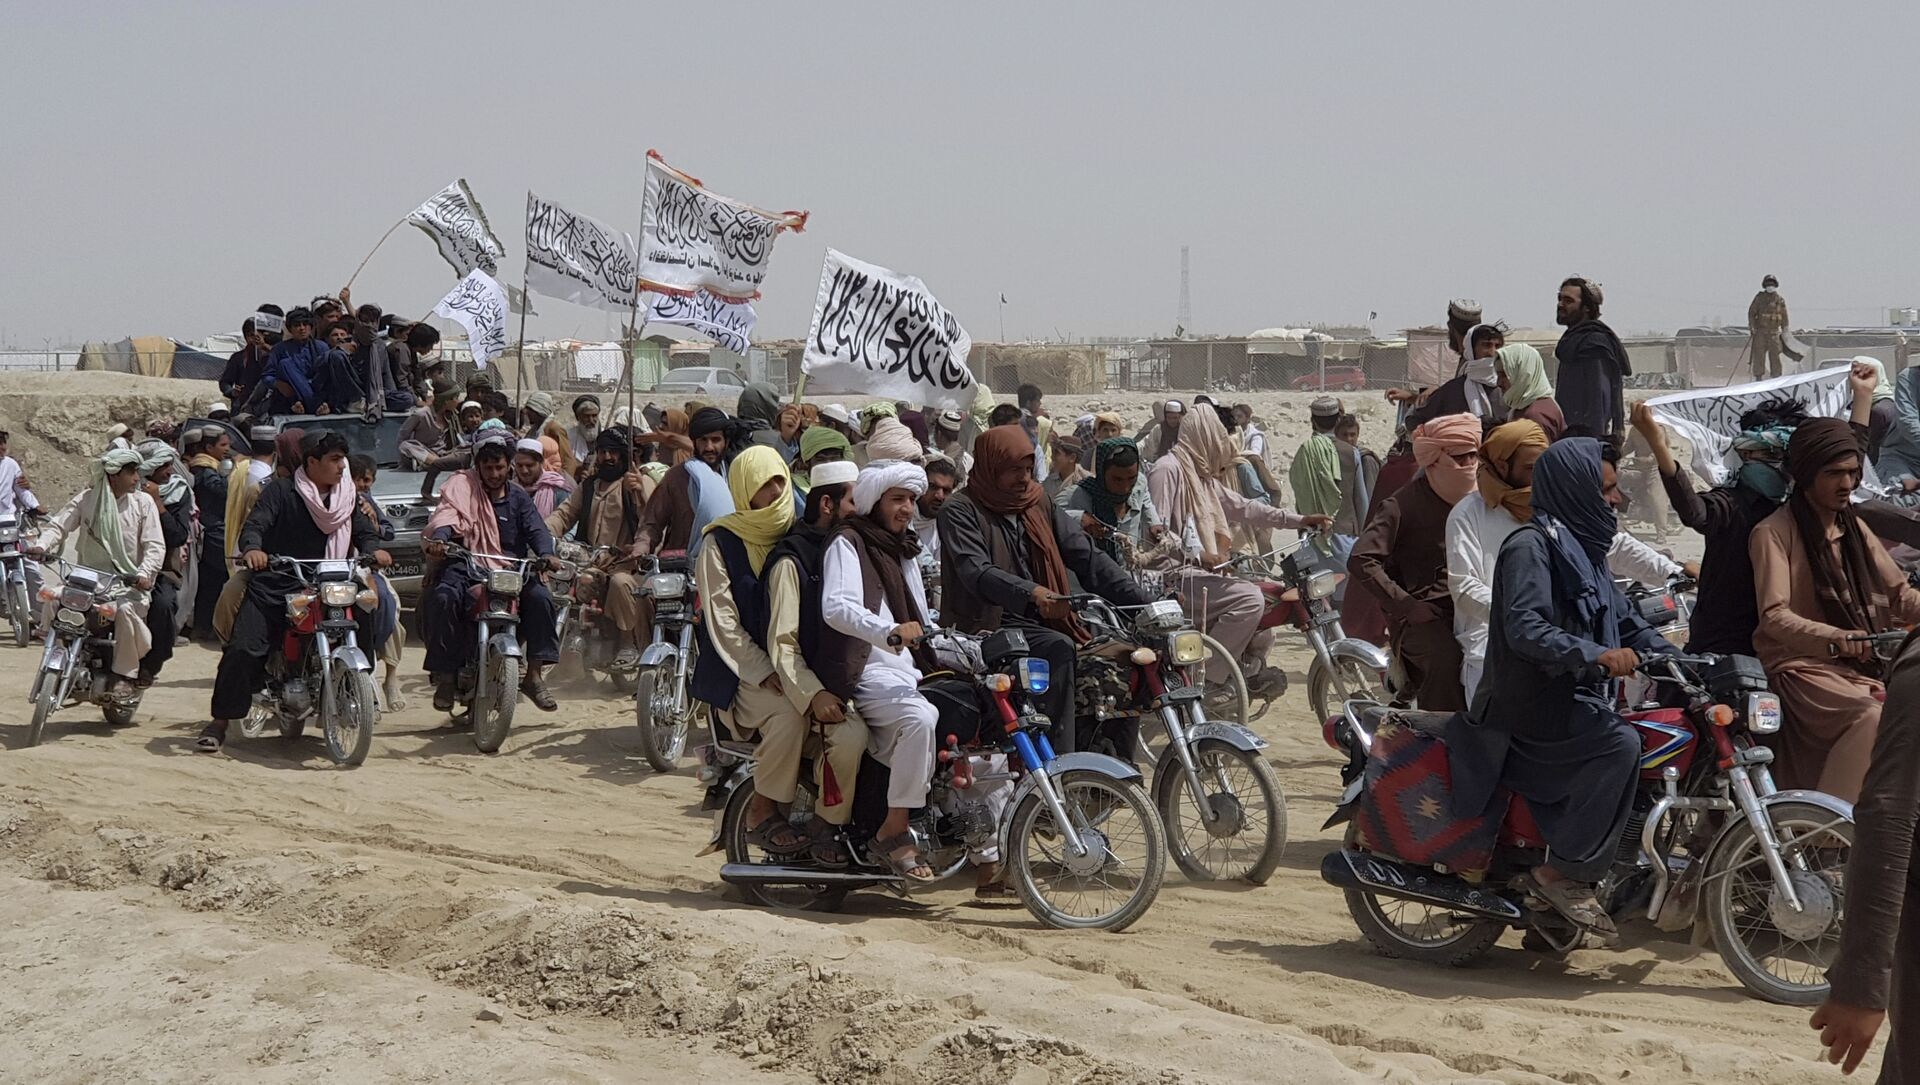 Supporters of the Taliban carry the Taliban's signature white flags in the Afghan-Pakistan border town of Chaman, Pakistan, Wednesday, July 14, 2021 - Sputnik International, 1920, 06.08.2021